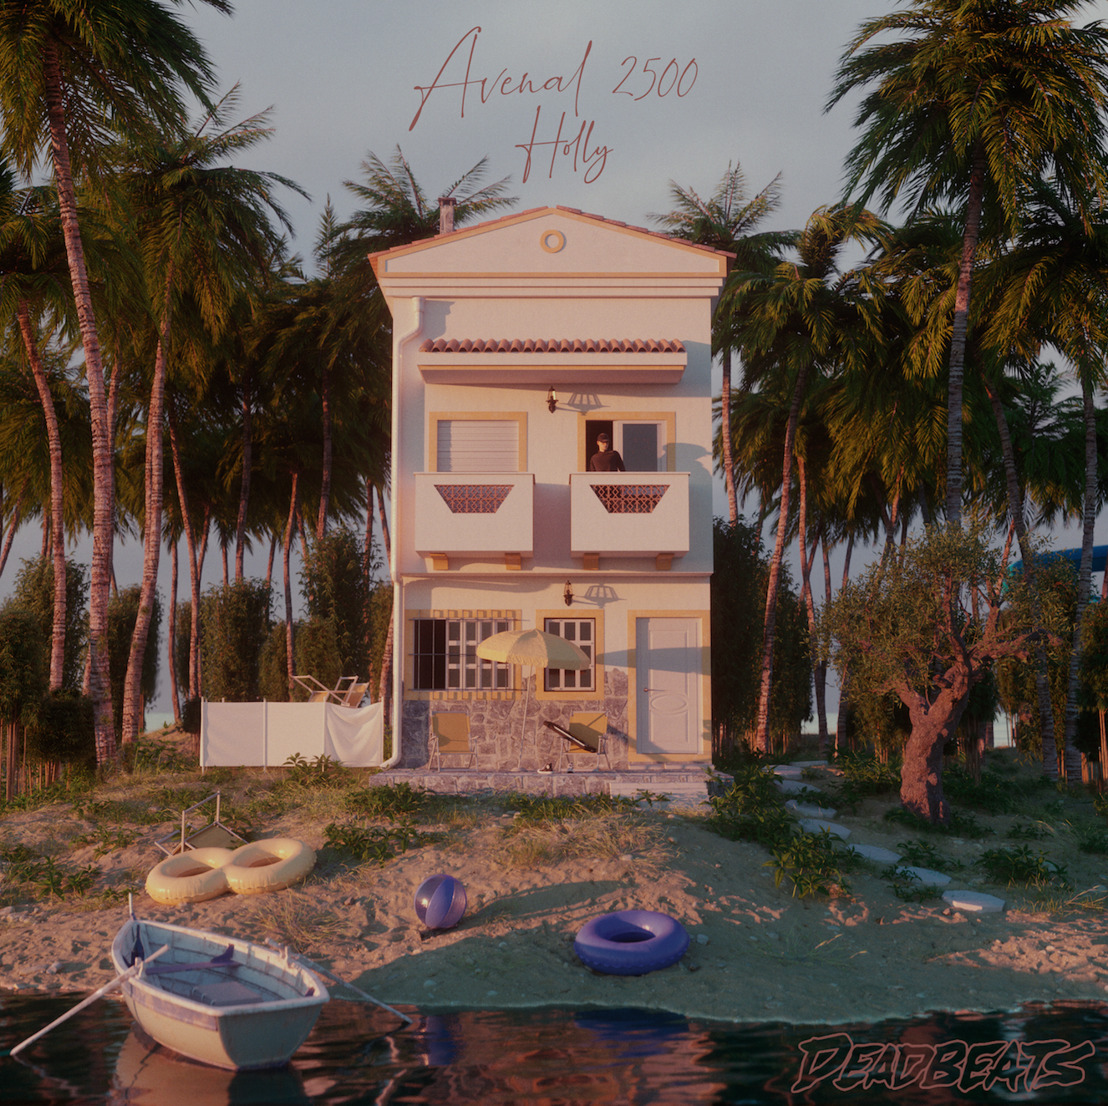 Portuguese Producer Holly Drops 4-track EP: Avenal 2500